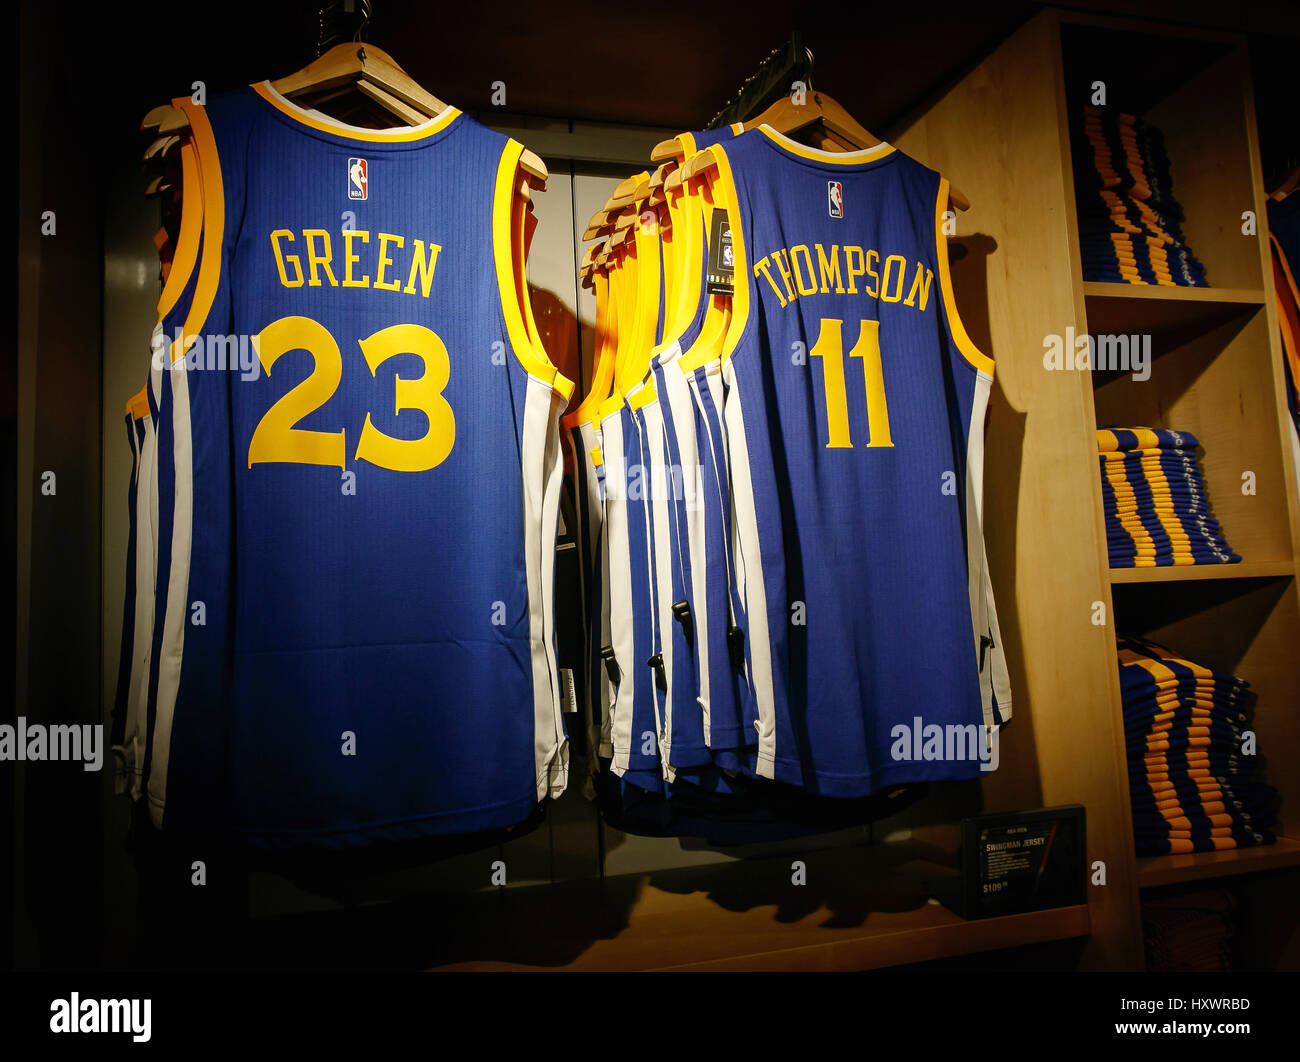 huge selection of 6de96 3a396 Replica jerseys of Green and Thompson of Golden State ...